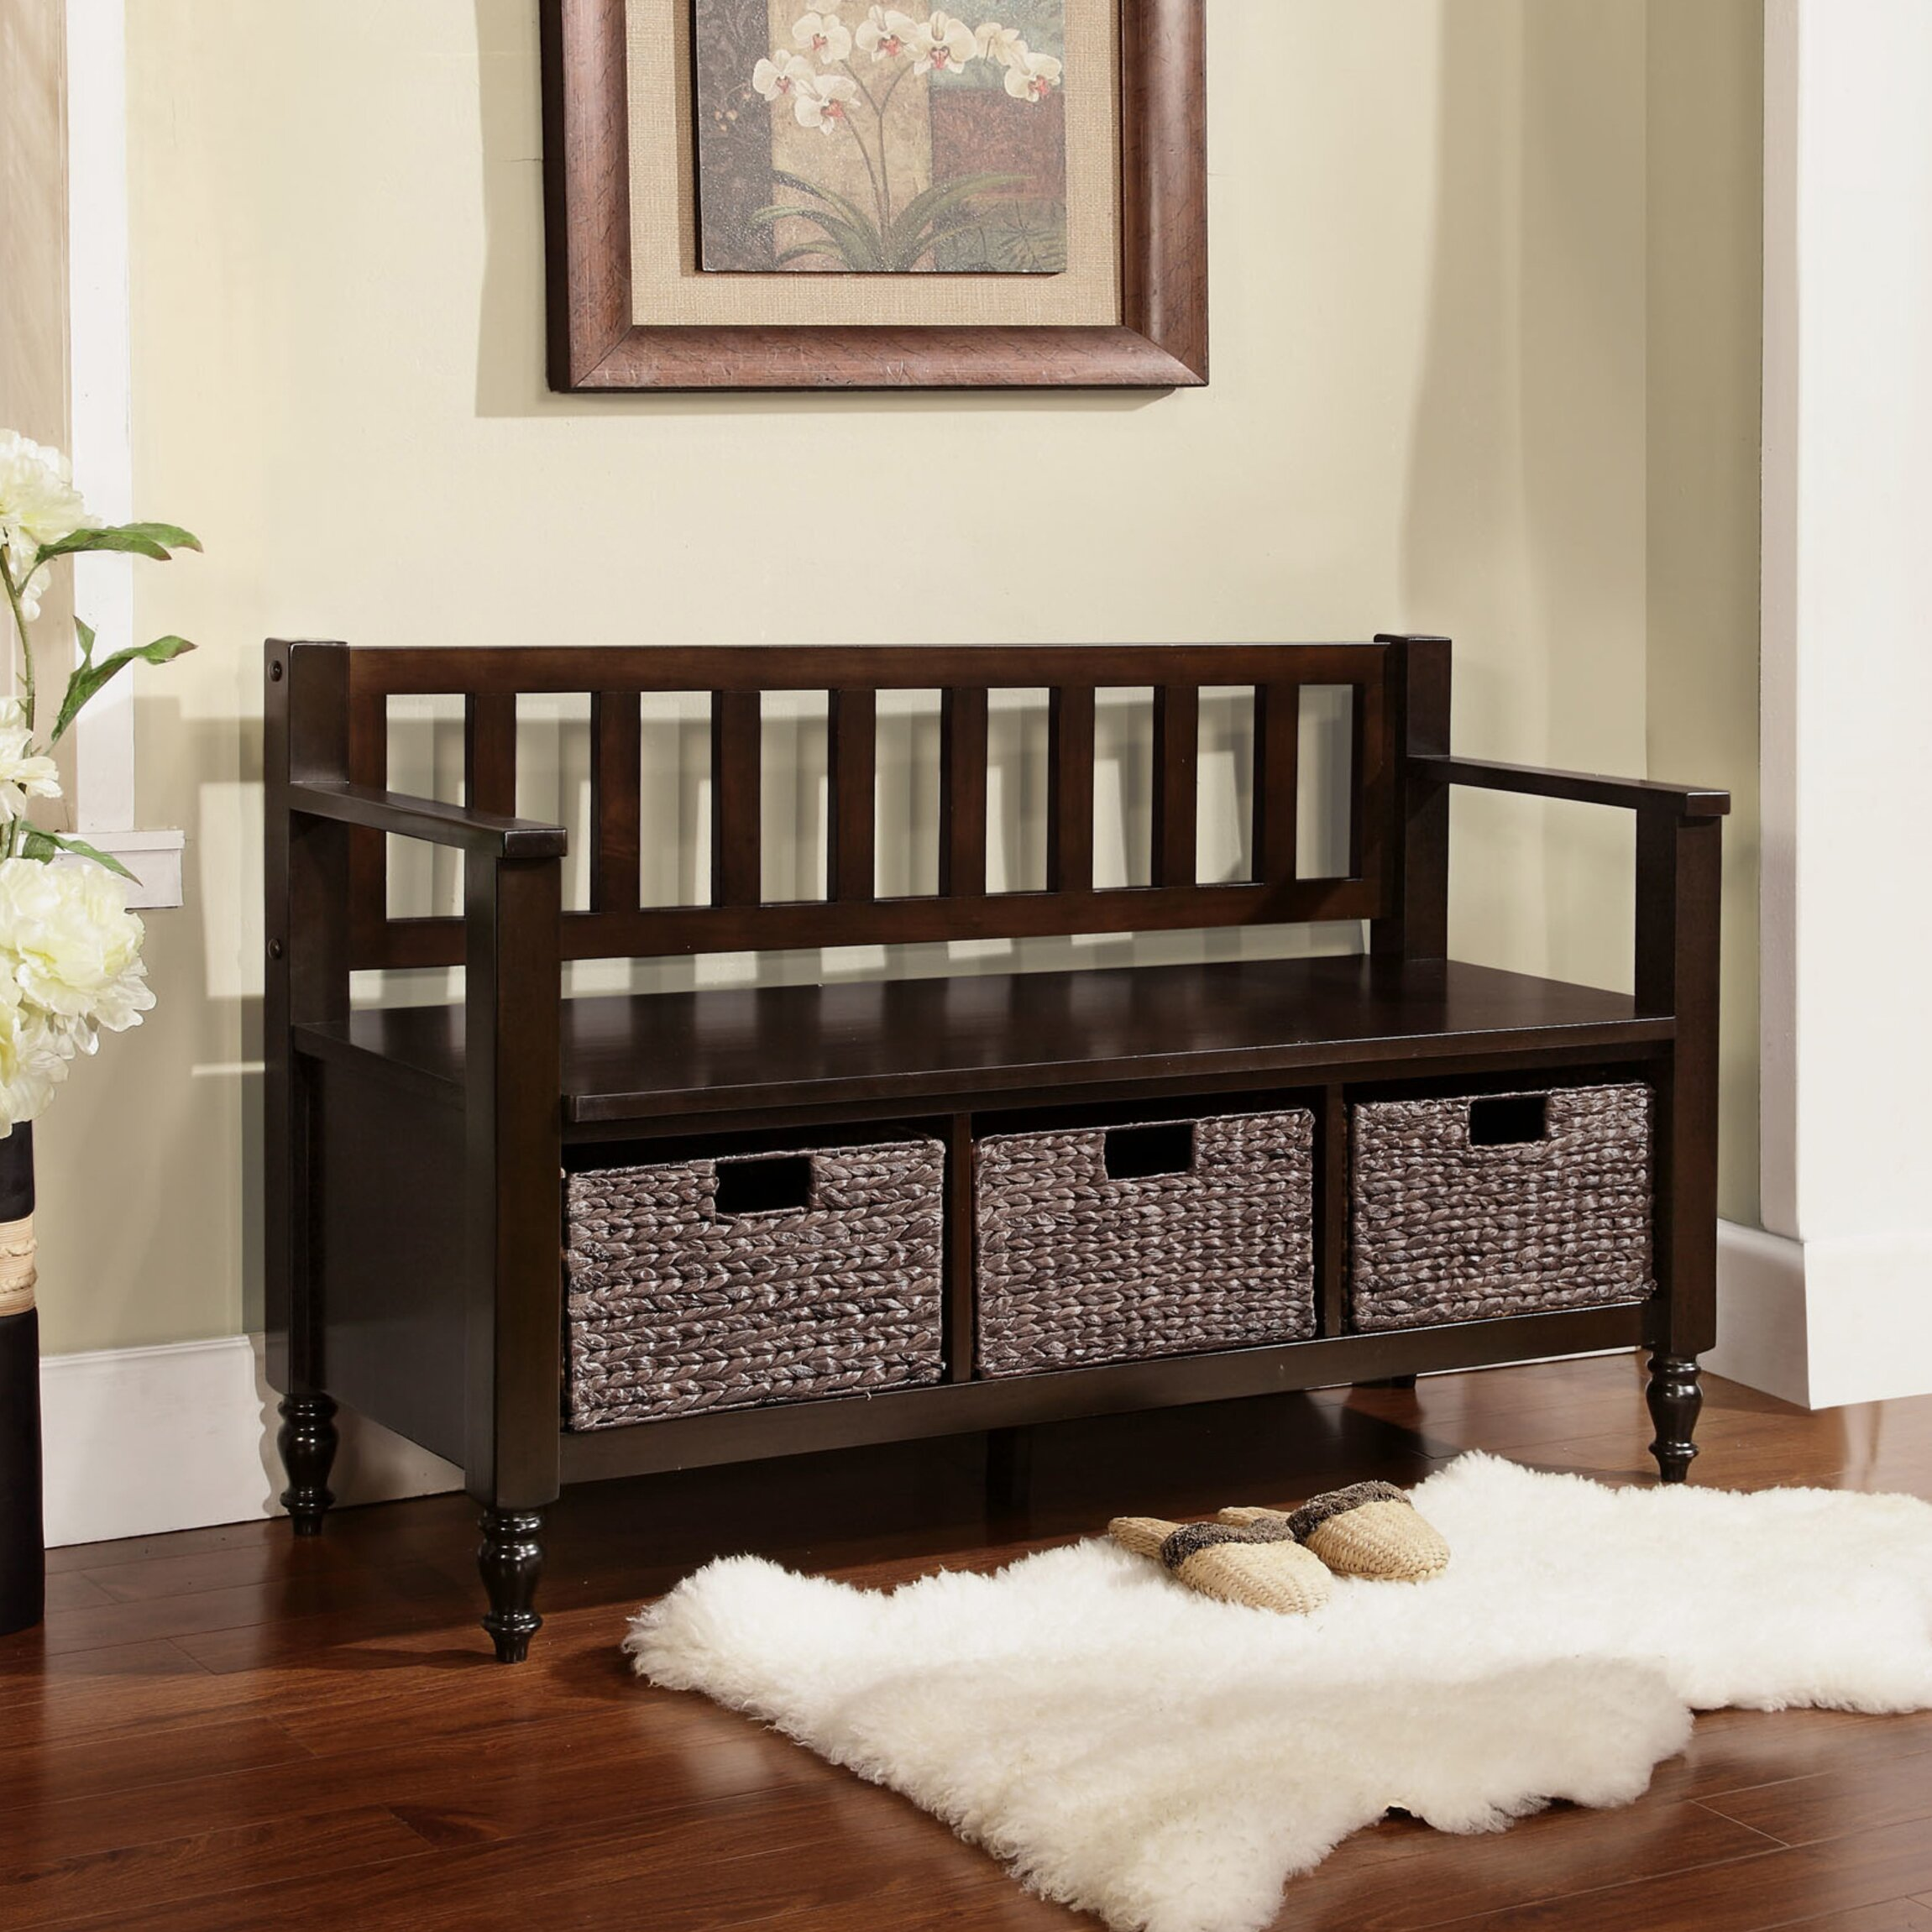 Simpli home dakota entryway bench reviews wayfair for Foyer ideas pinterest